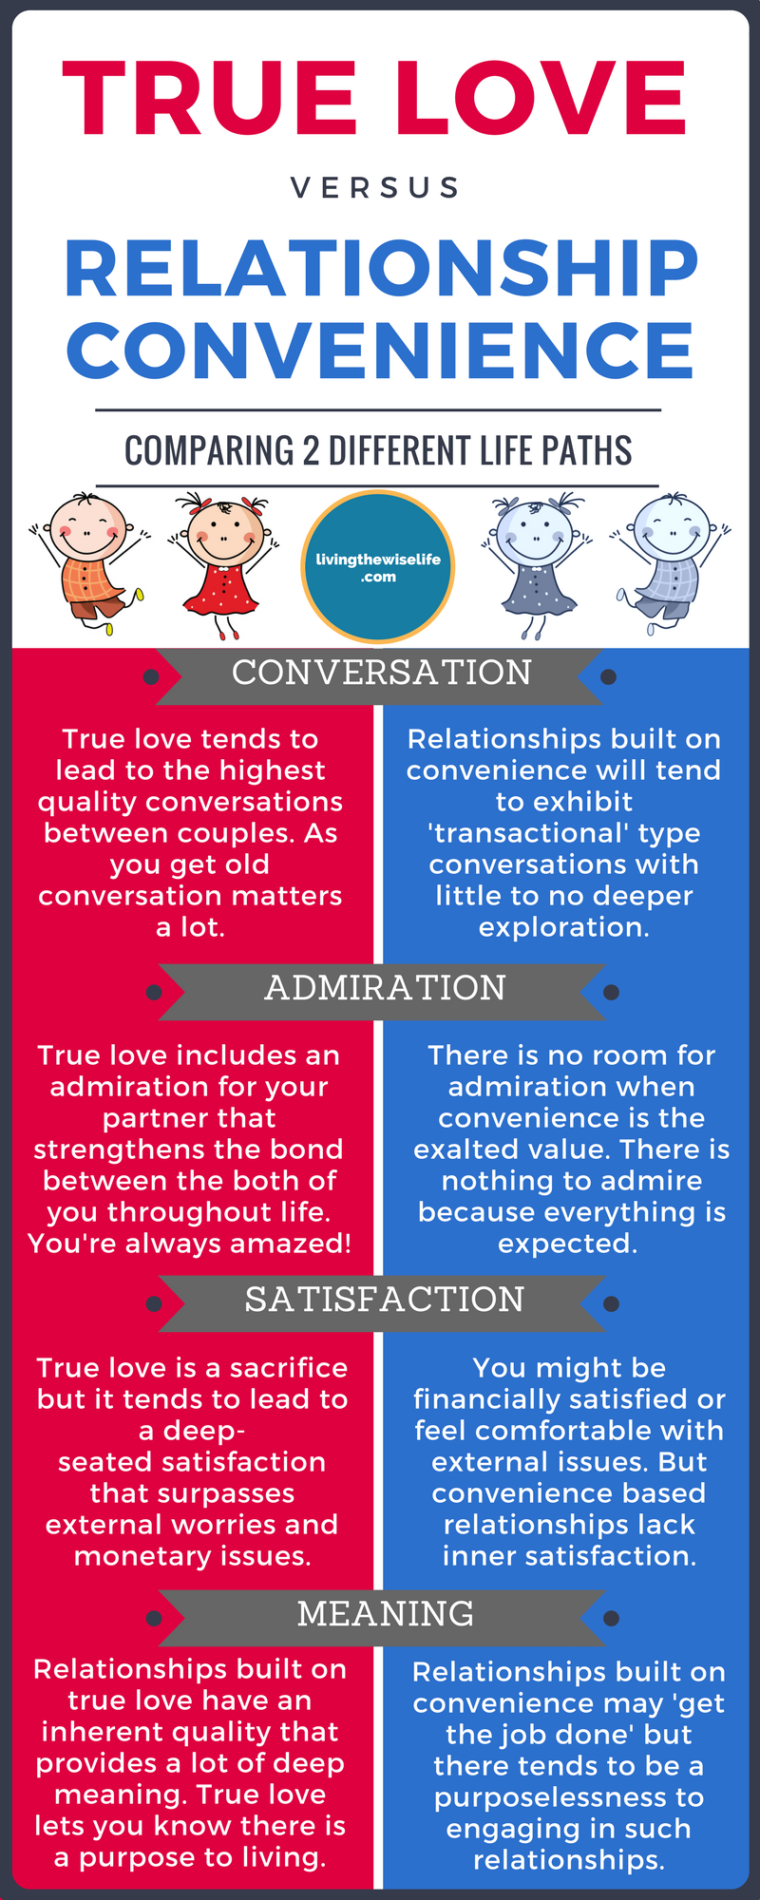 True Love vs Relationship Convenience